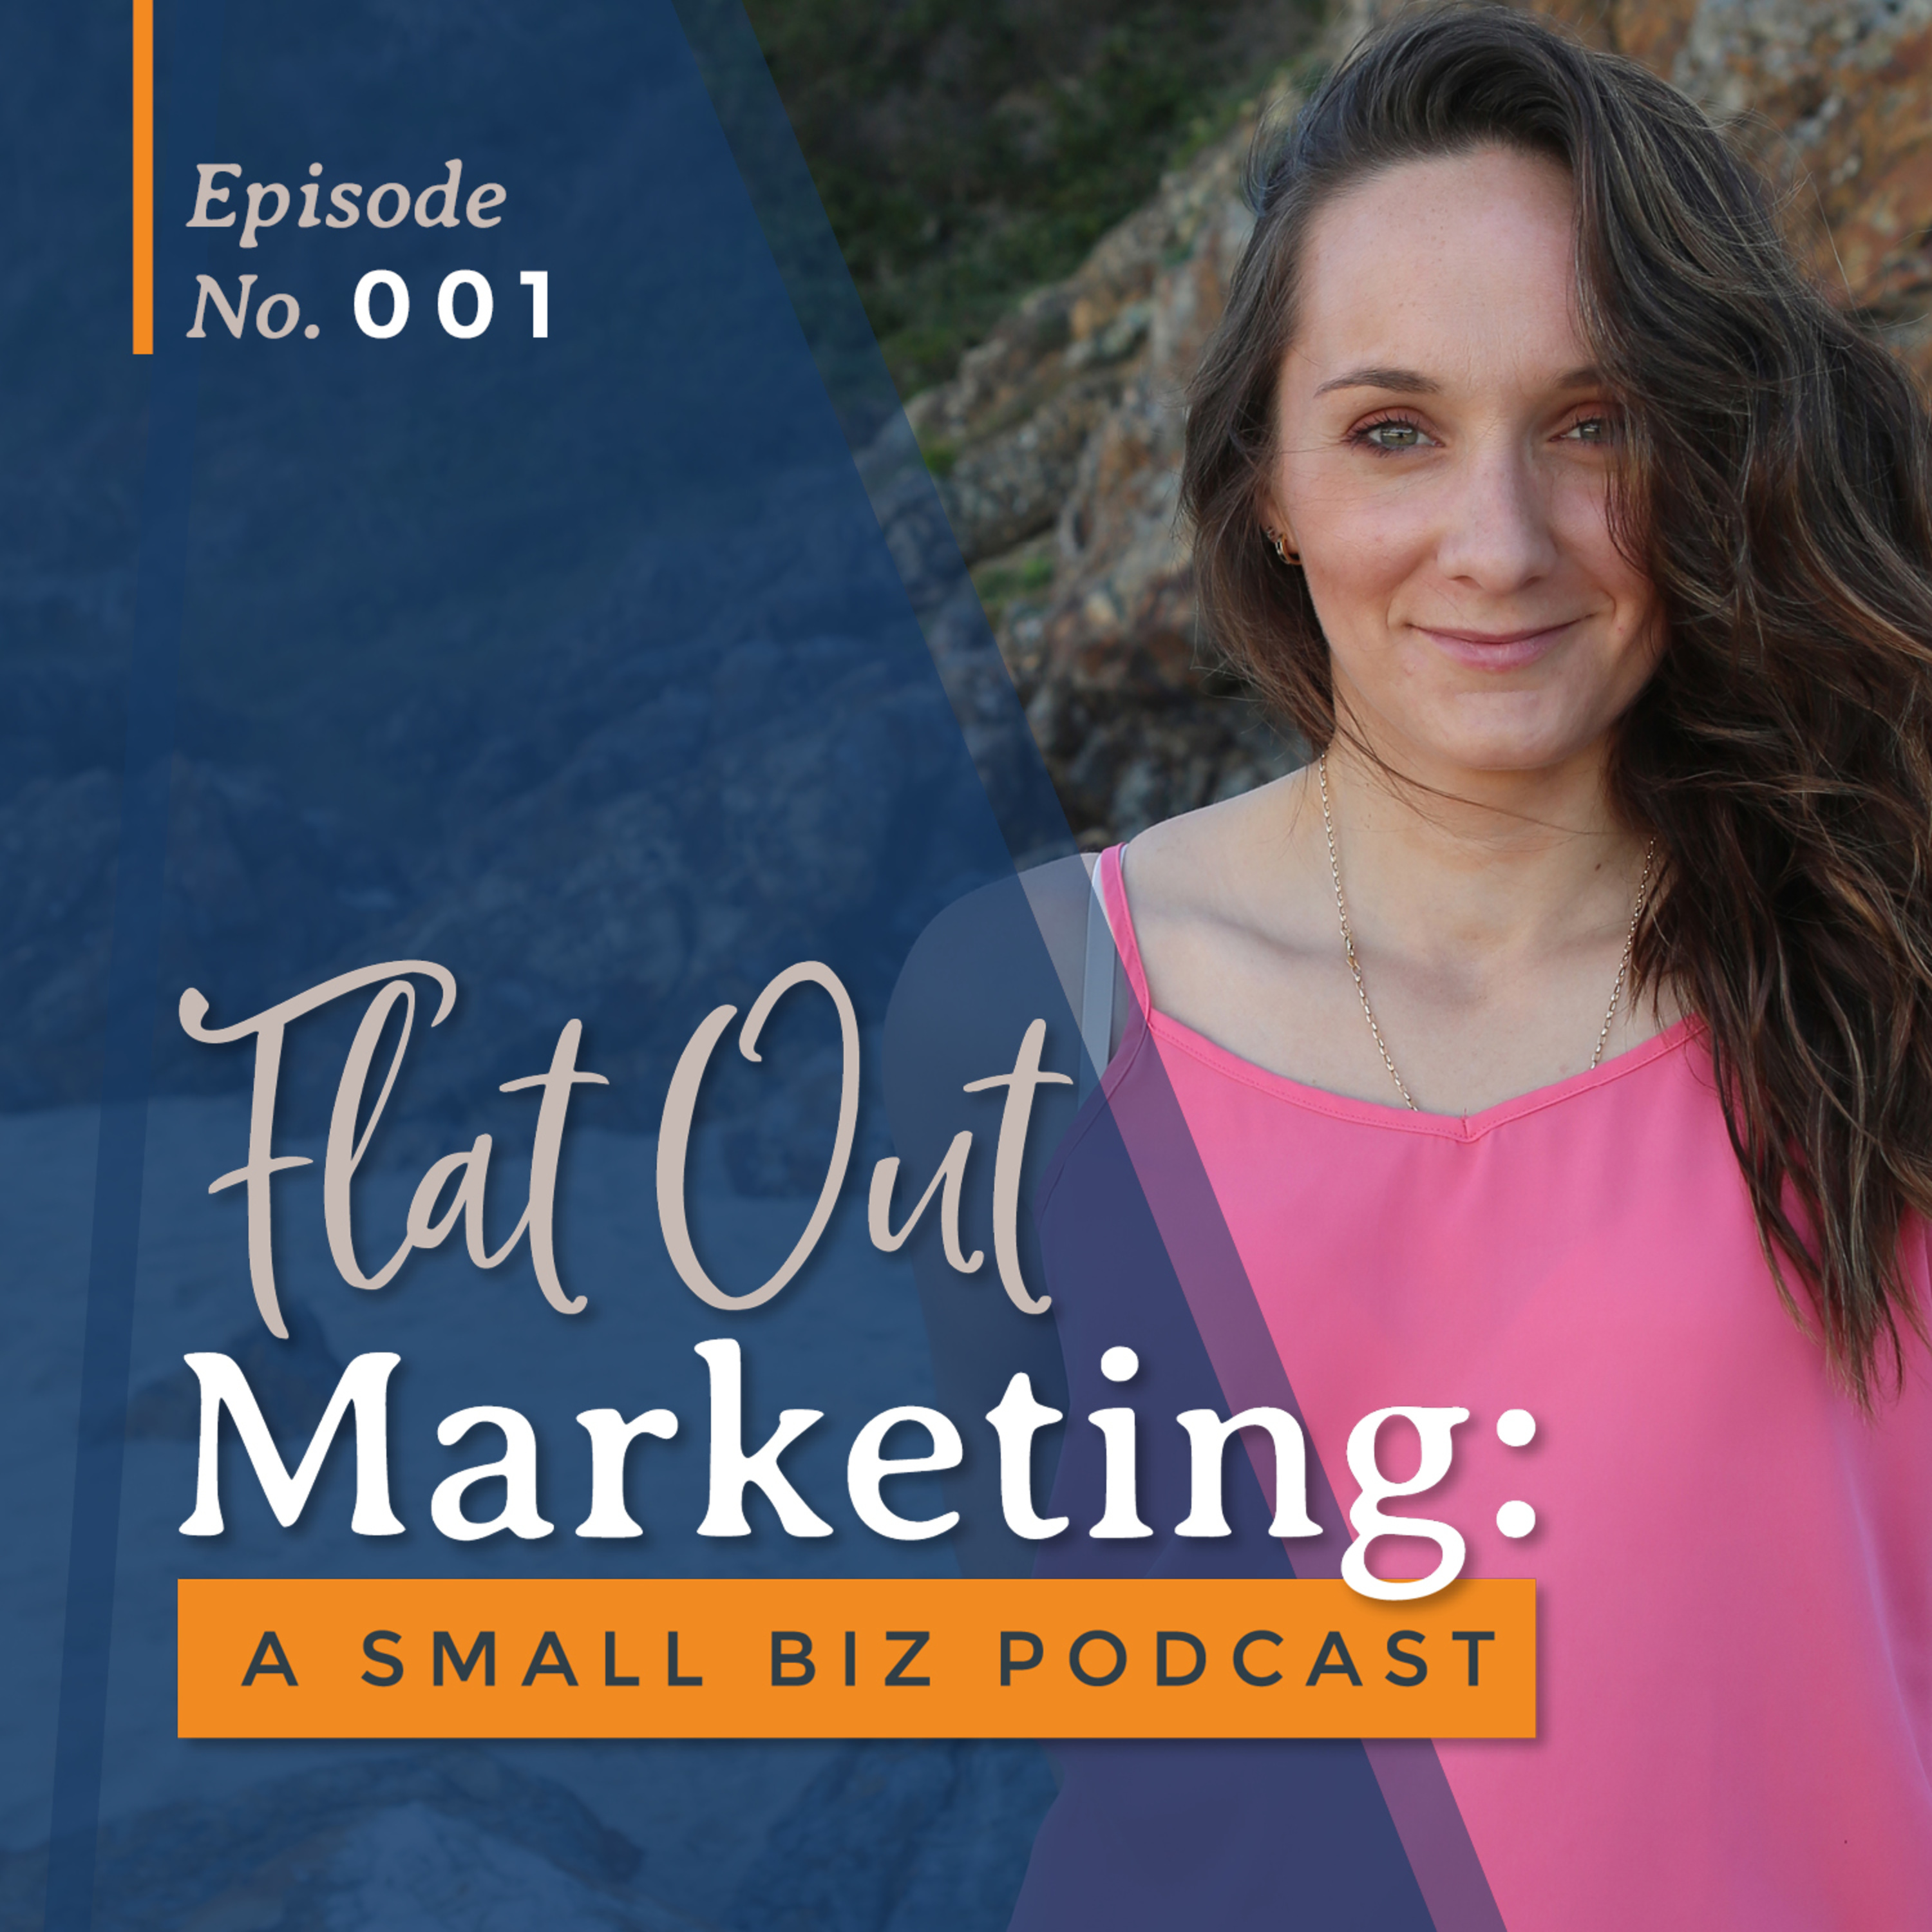 001: Welcome to Flat Out Marketing